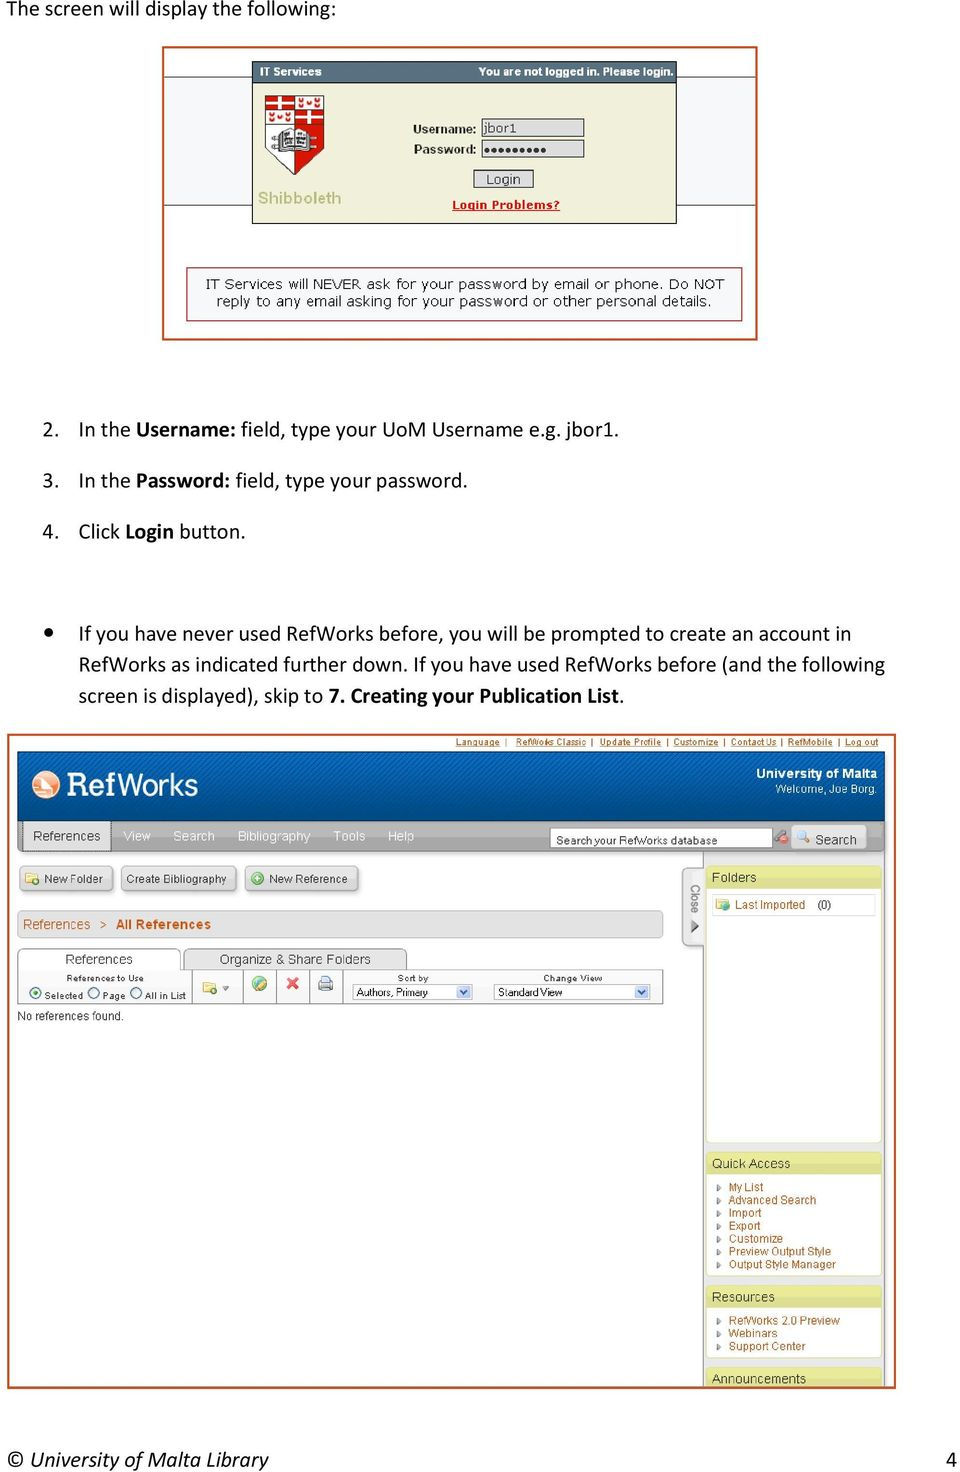 If you have never used RefWorks before, you will be prompted to create an account in RefWorks as indicated